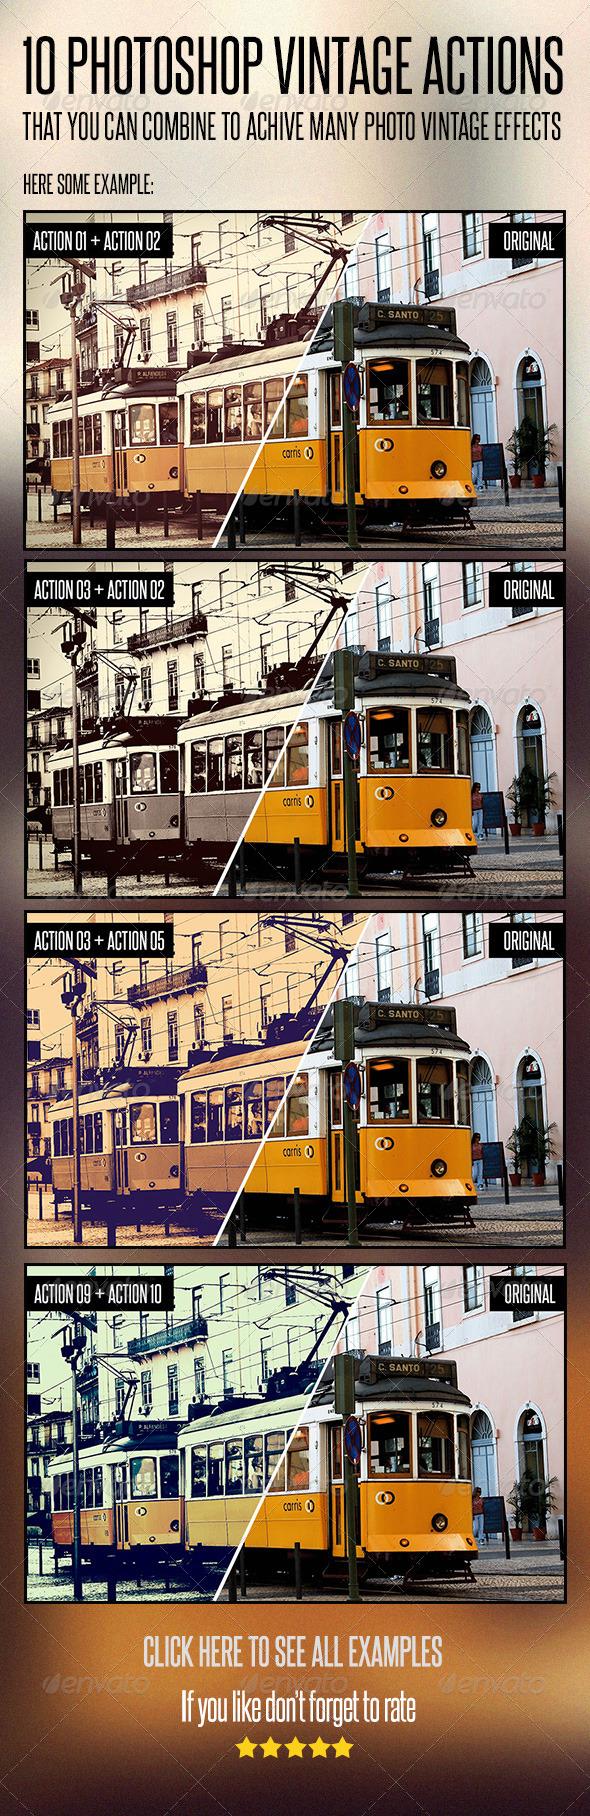 GraphicRiver 10 Photoshop Vintage Actions 4731555